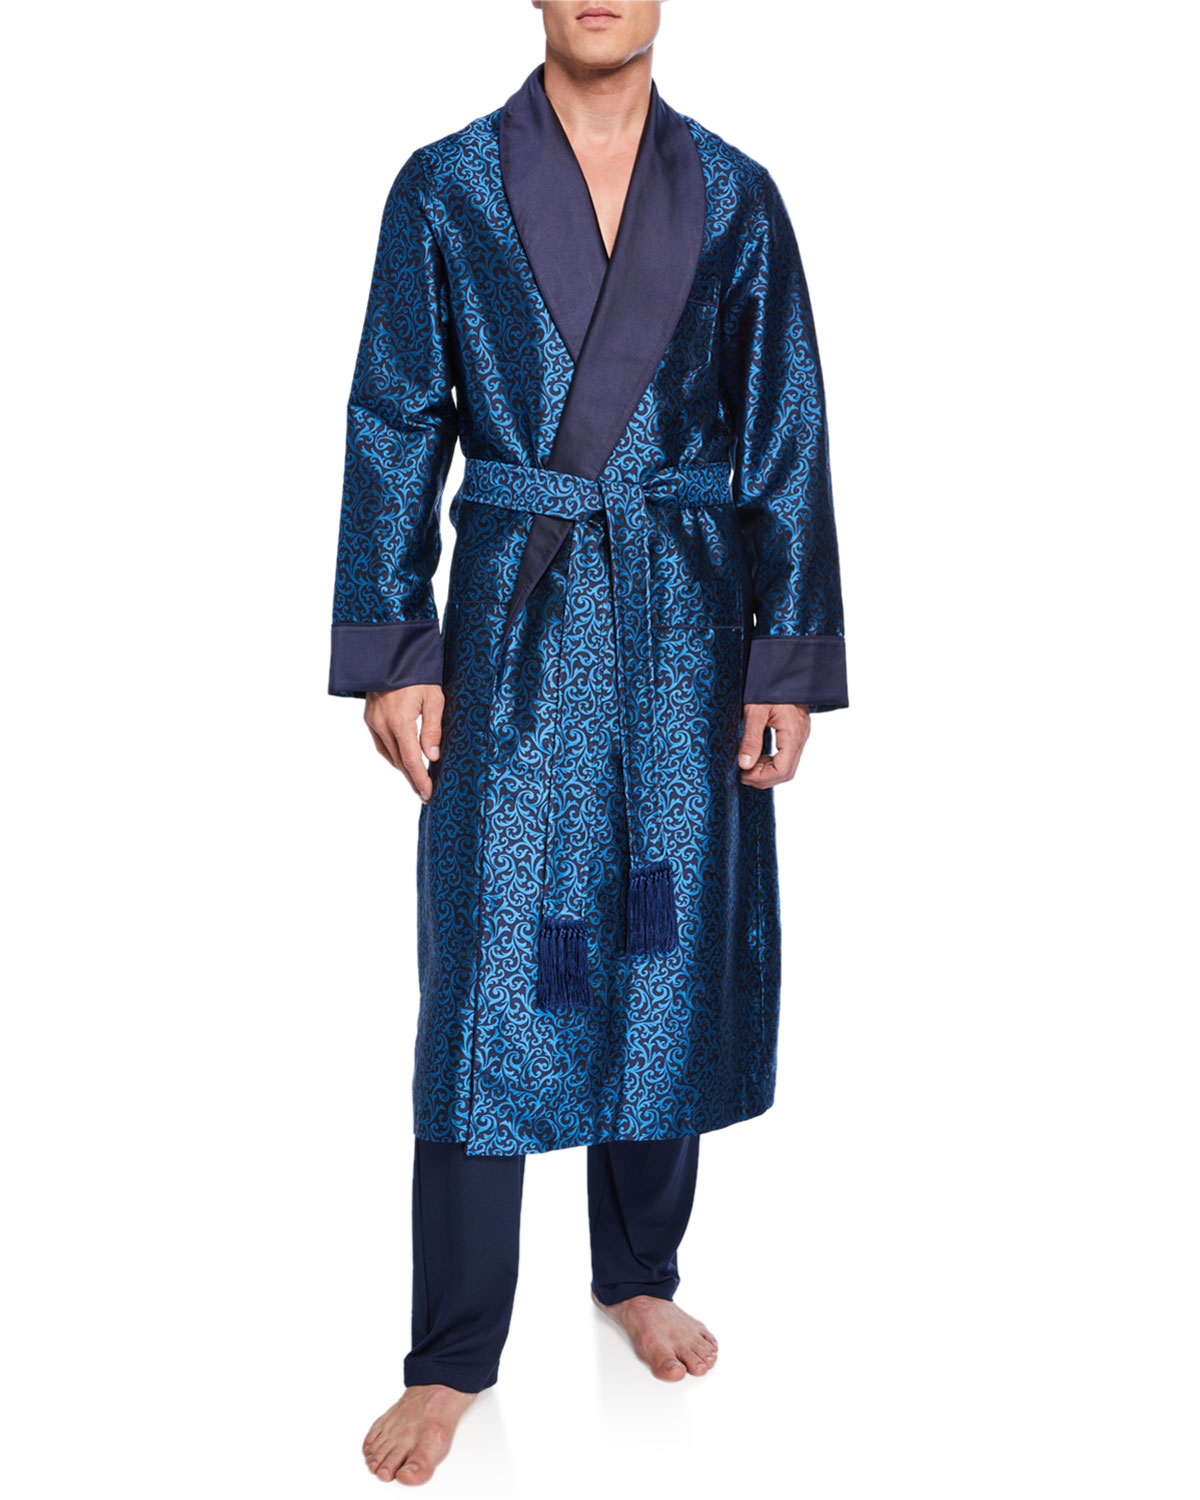 Derek Rose Tops MEN'S VERONA 46 SILK ROBE